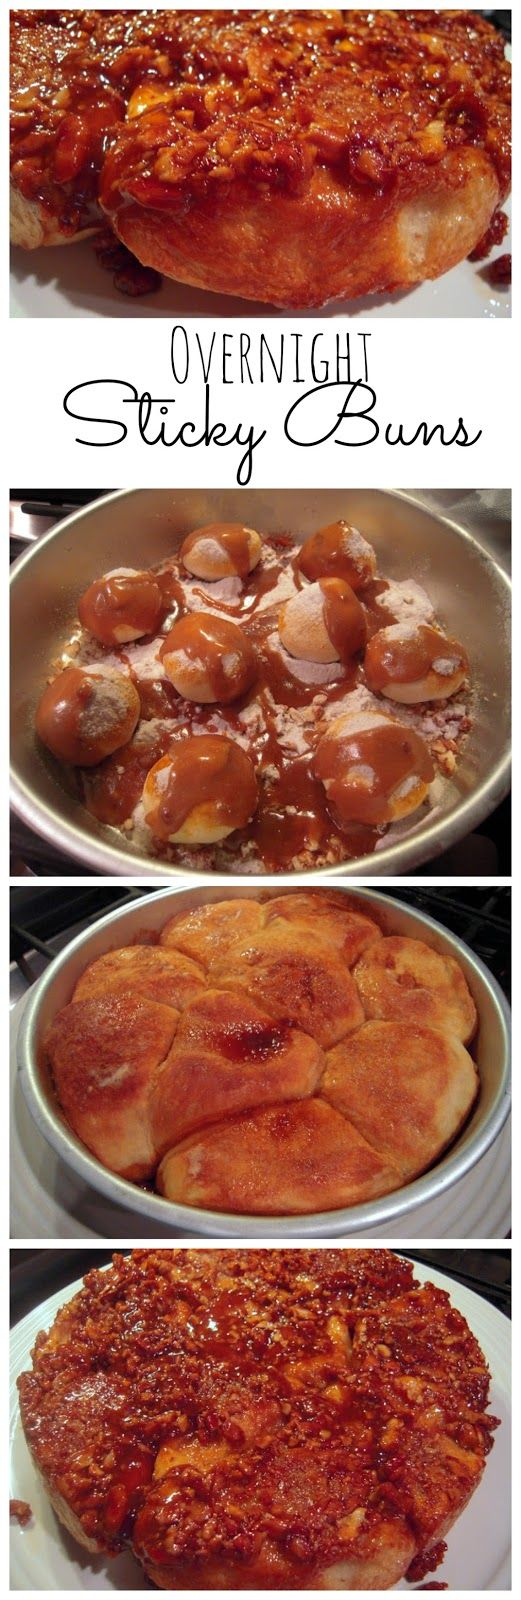 Overnight Sticky Buns: 1/4 cup chopped pecans , 9 frozen dinner rolls (Rhode's) , 1/2 package of butterscotch cook & serve pudding (not instant) , 1/4 cup butter , 1/4 cup brown sugar